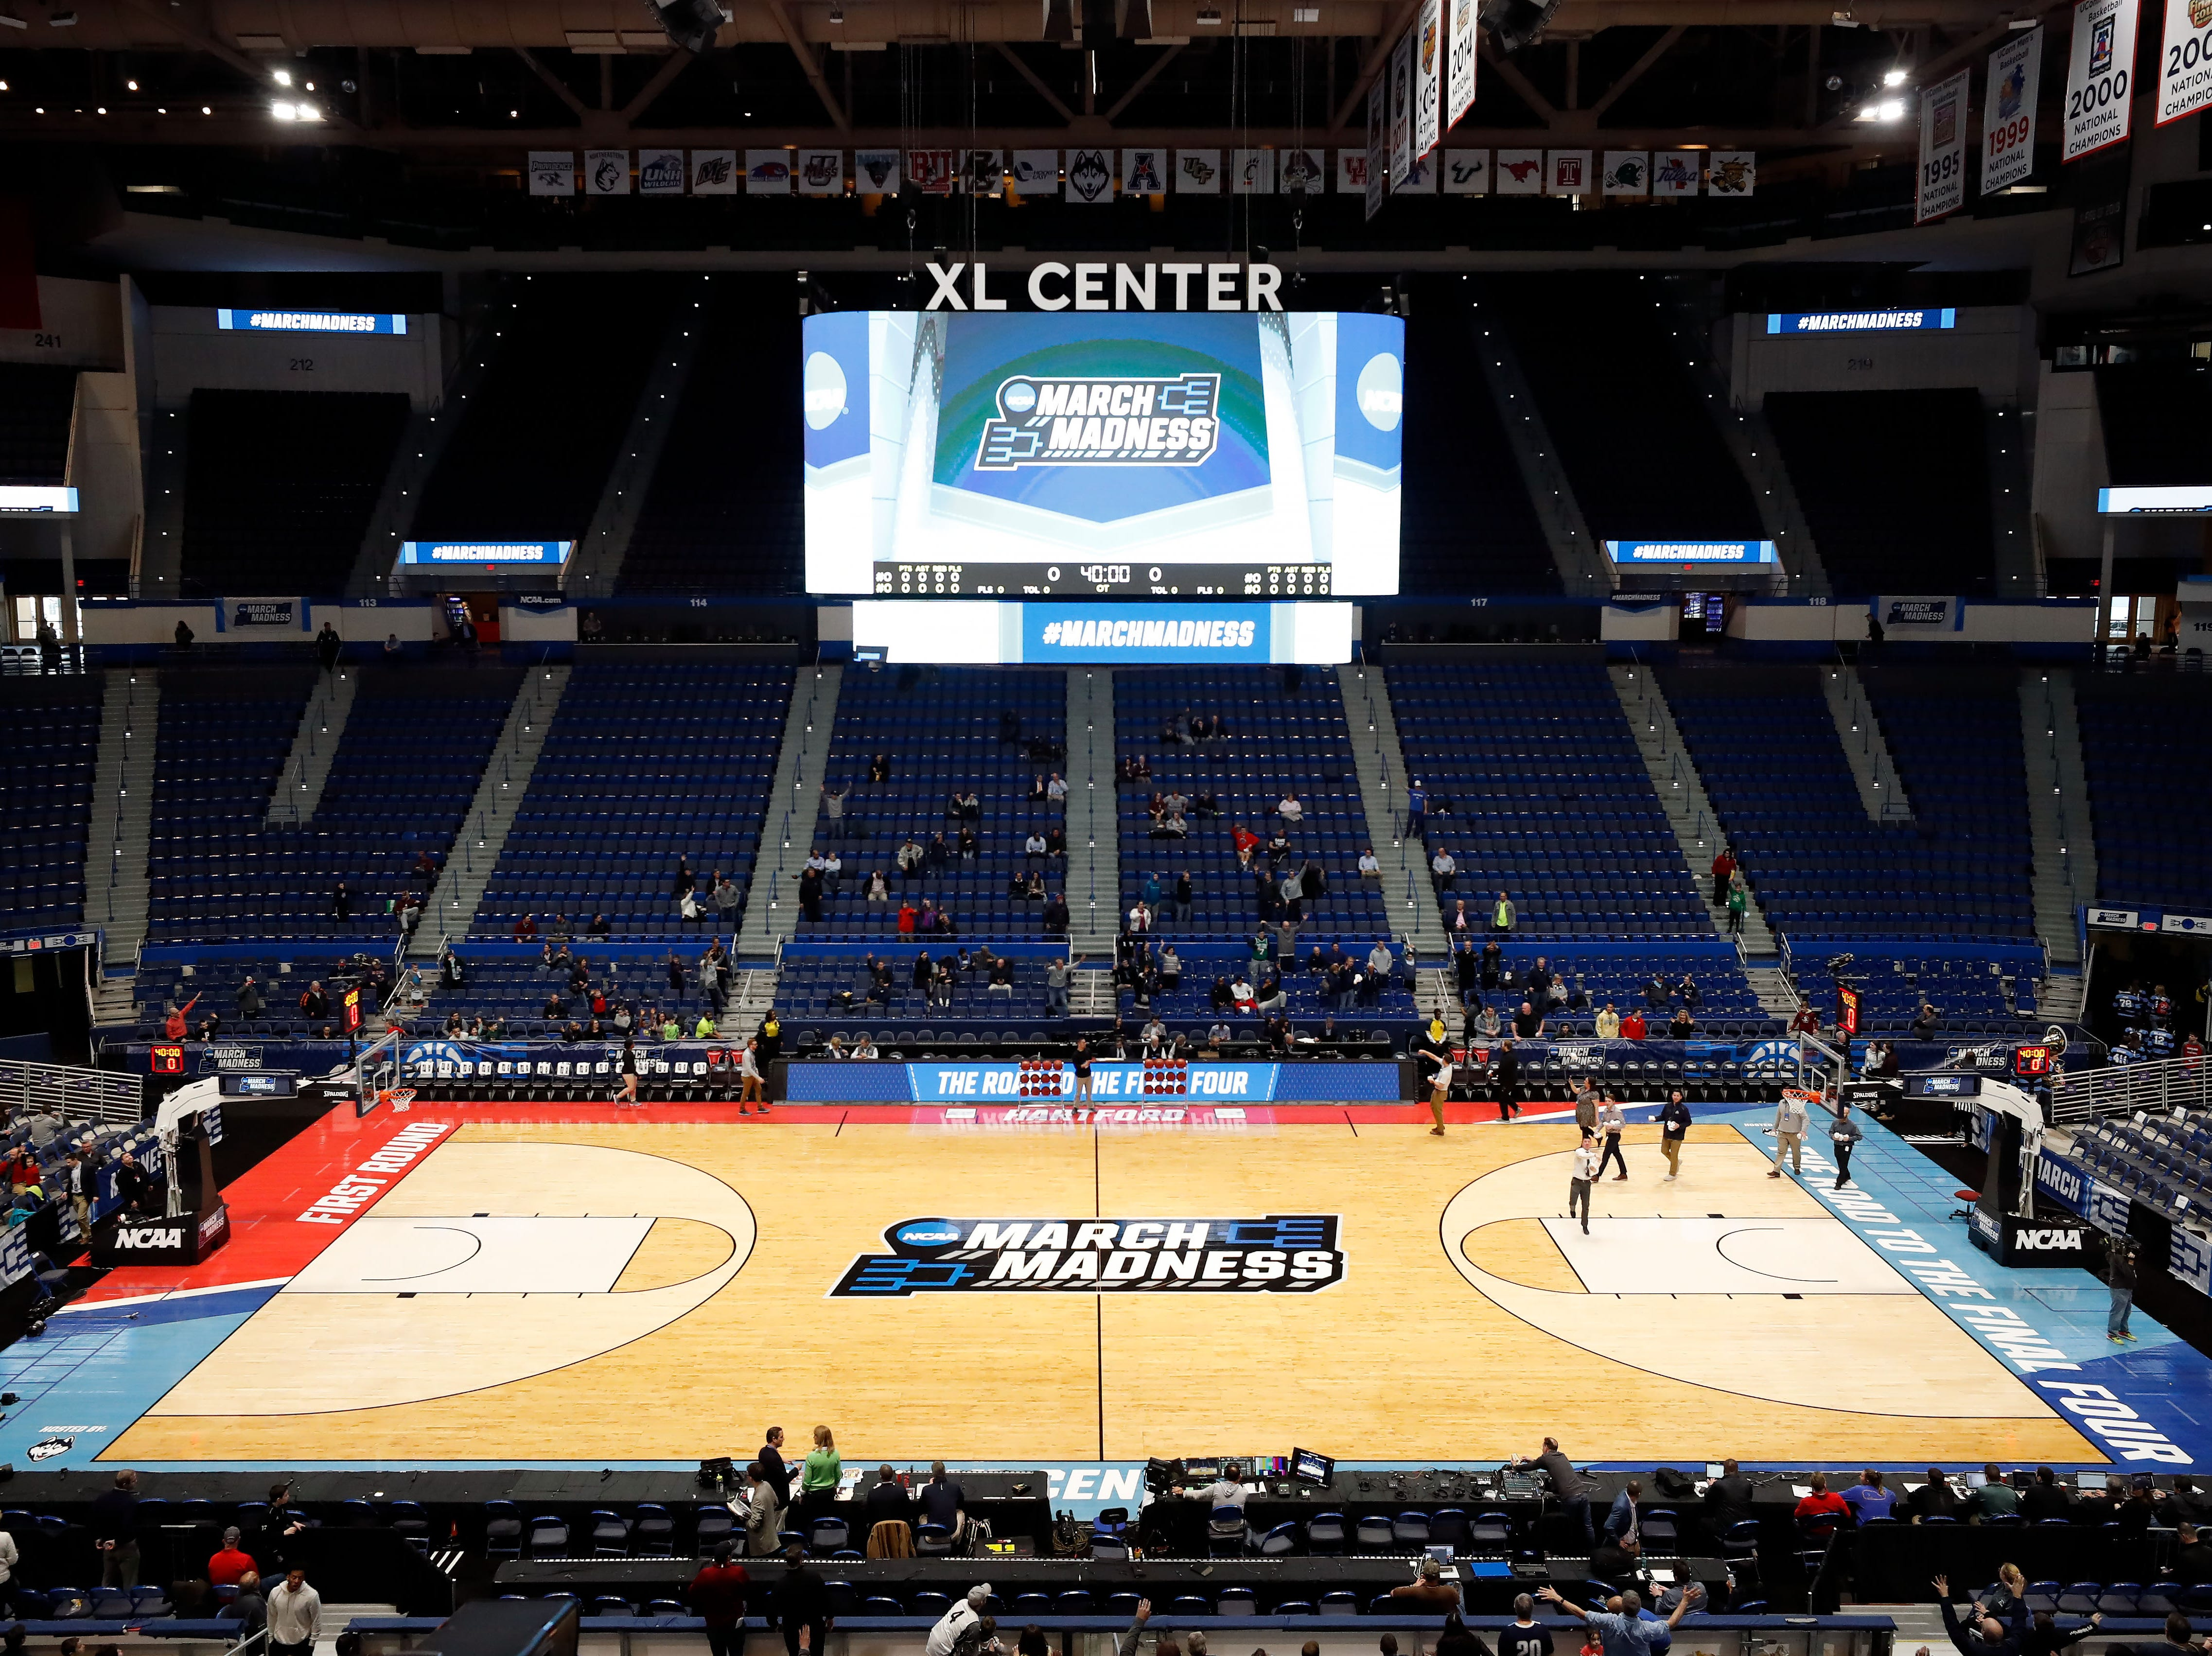 Mar 20, 2019; Hartford, CT, USA; A general view of the court during the Purdue Boilermakers practice before the first round of the 2019 NCAA Tournament at XL Center. Mandatory Credit: David Butler II-USA TODAY Sports